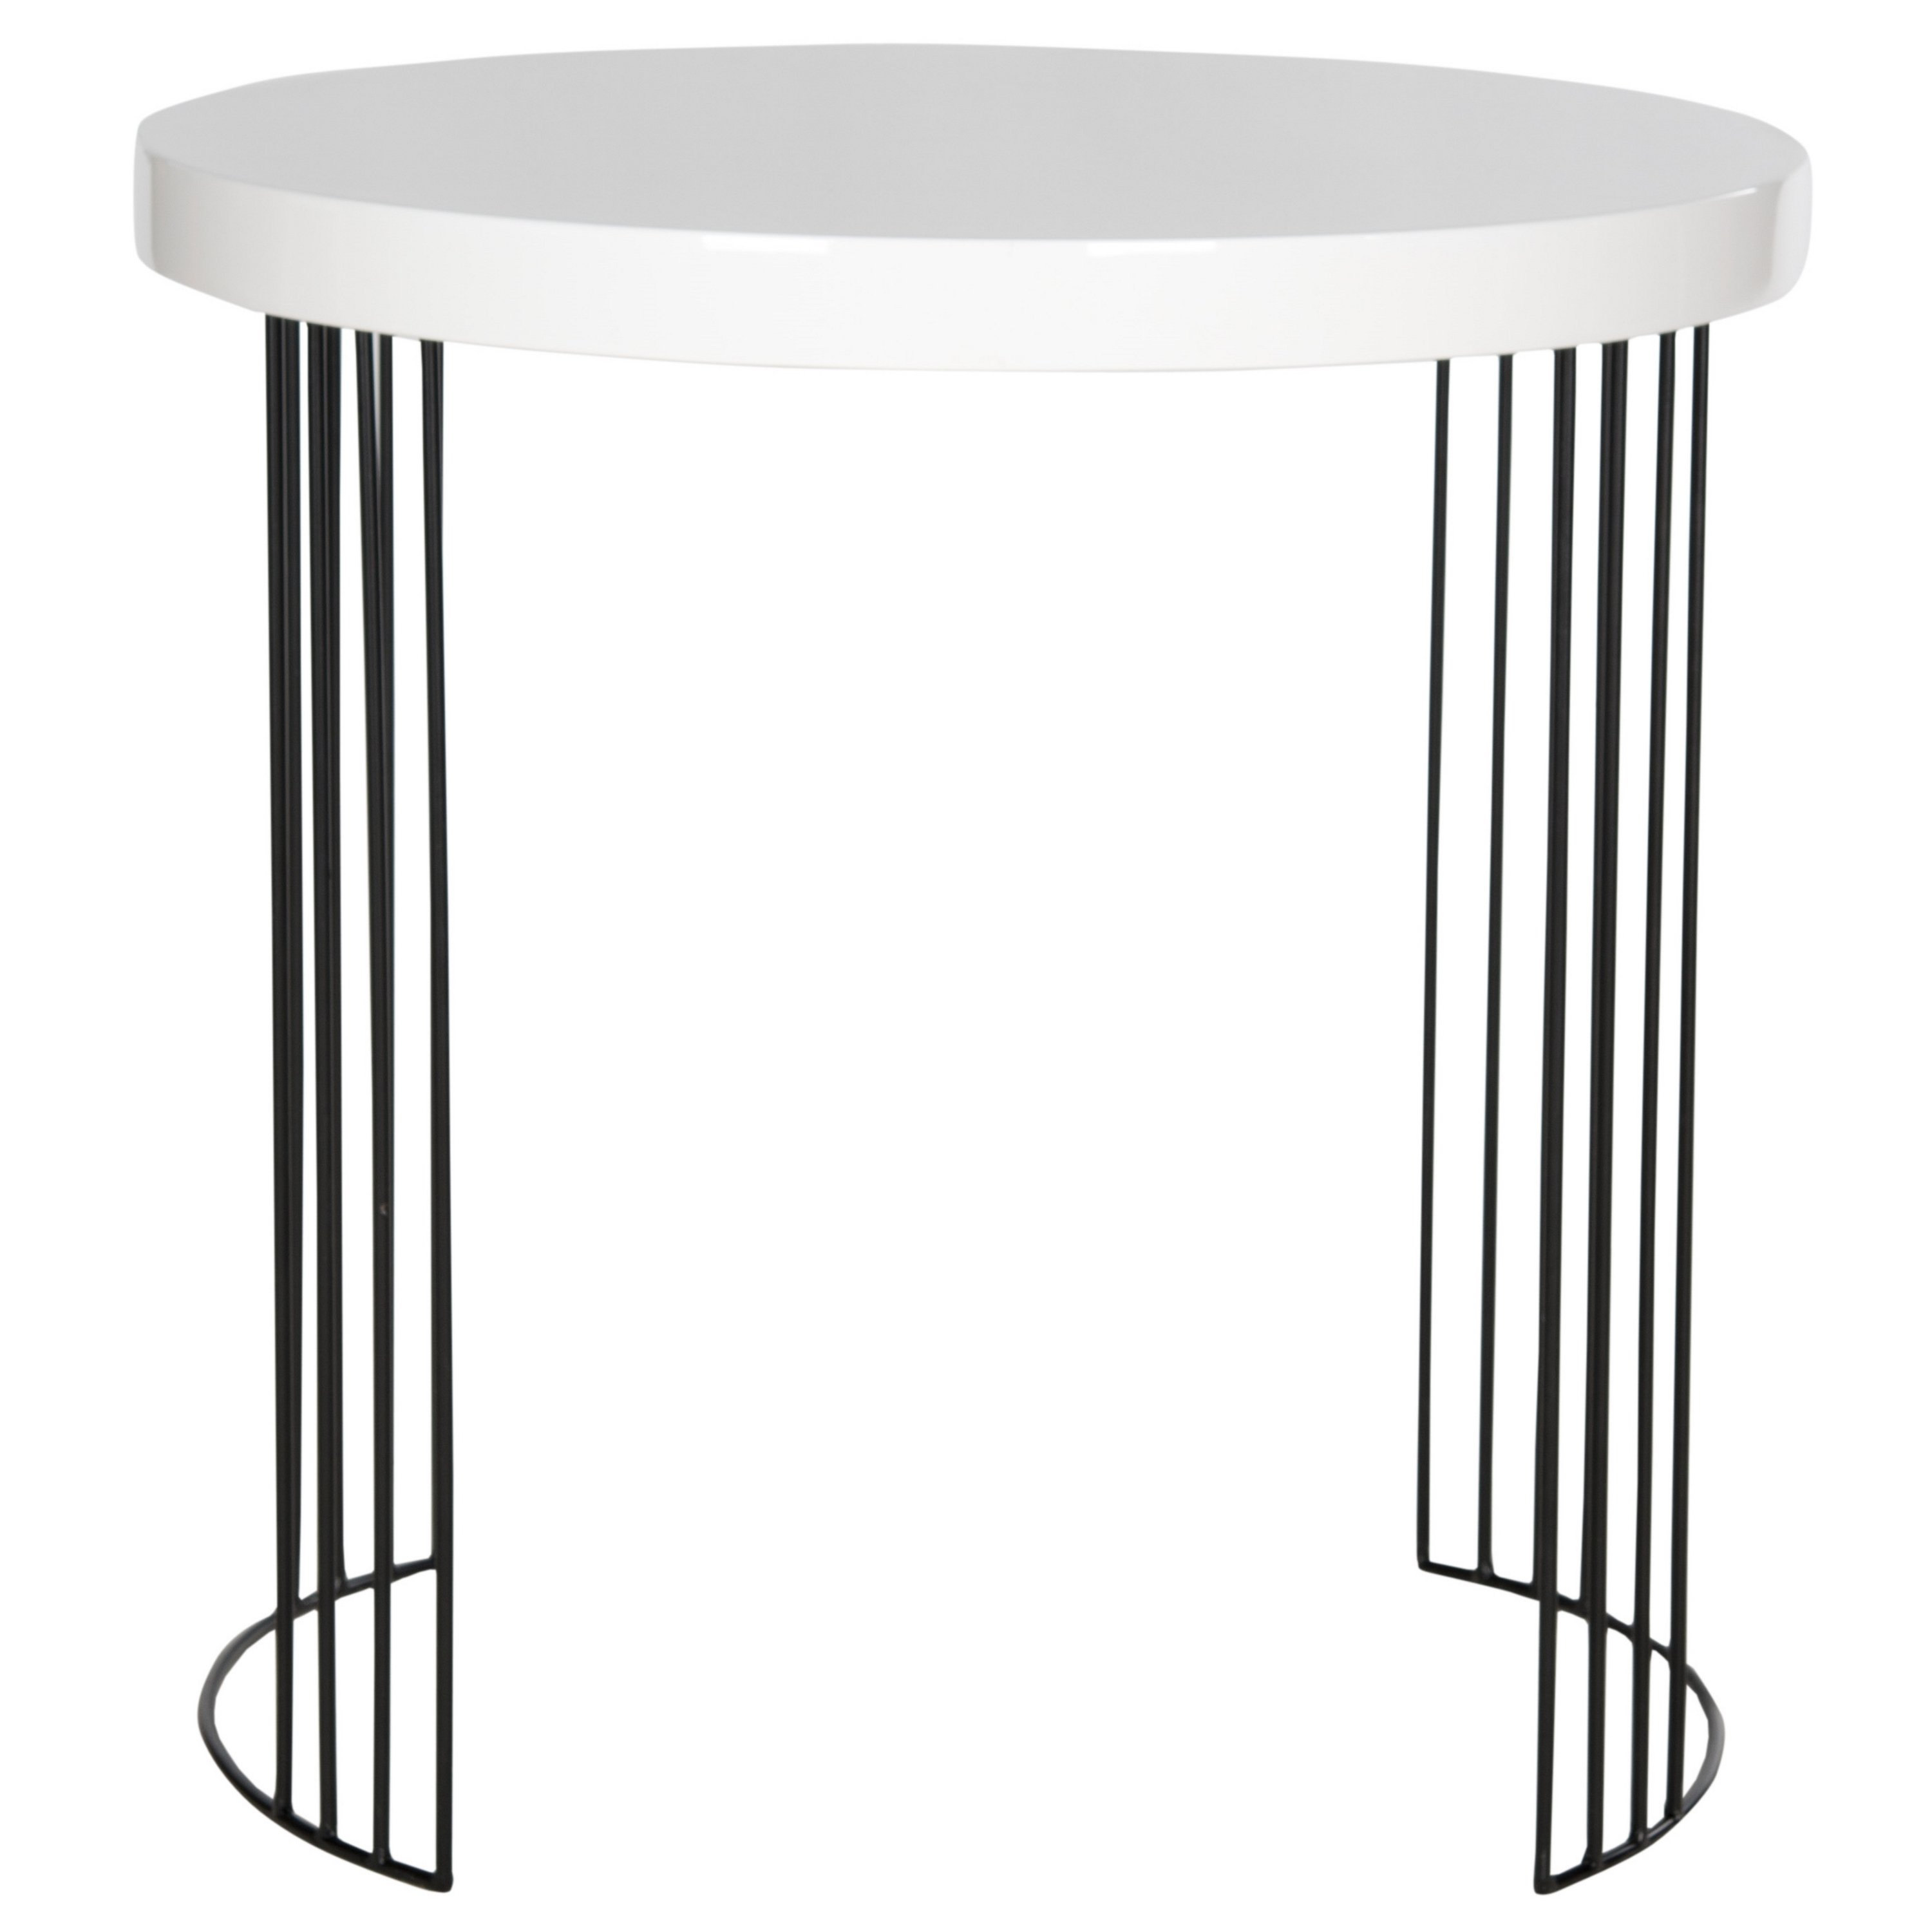 safavieh mid century modern kelly white lacquer side table accent free shipping today retro bedroom furniture wilcox unique round tablecloths globe lighting acrylic snack designer